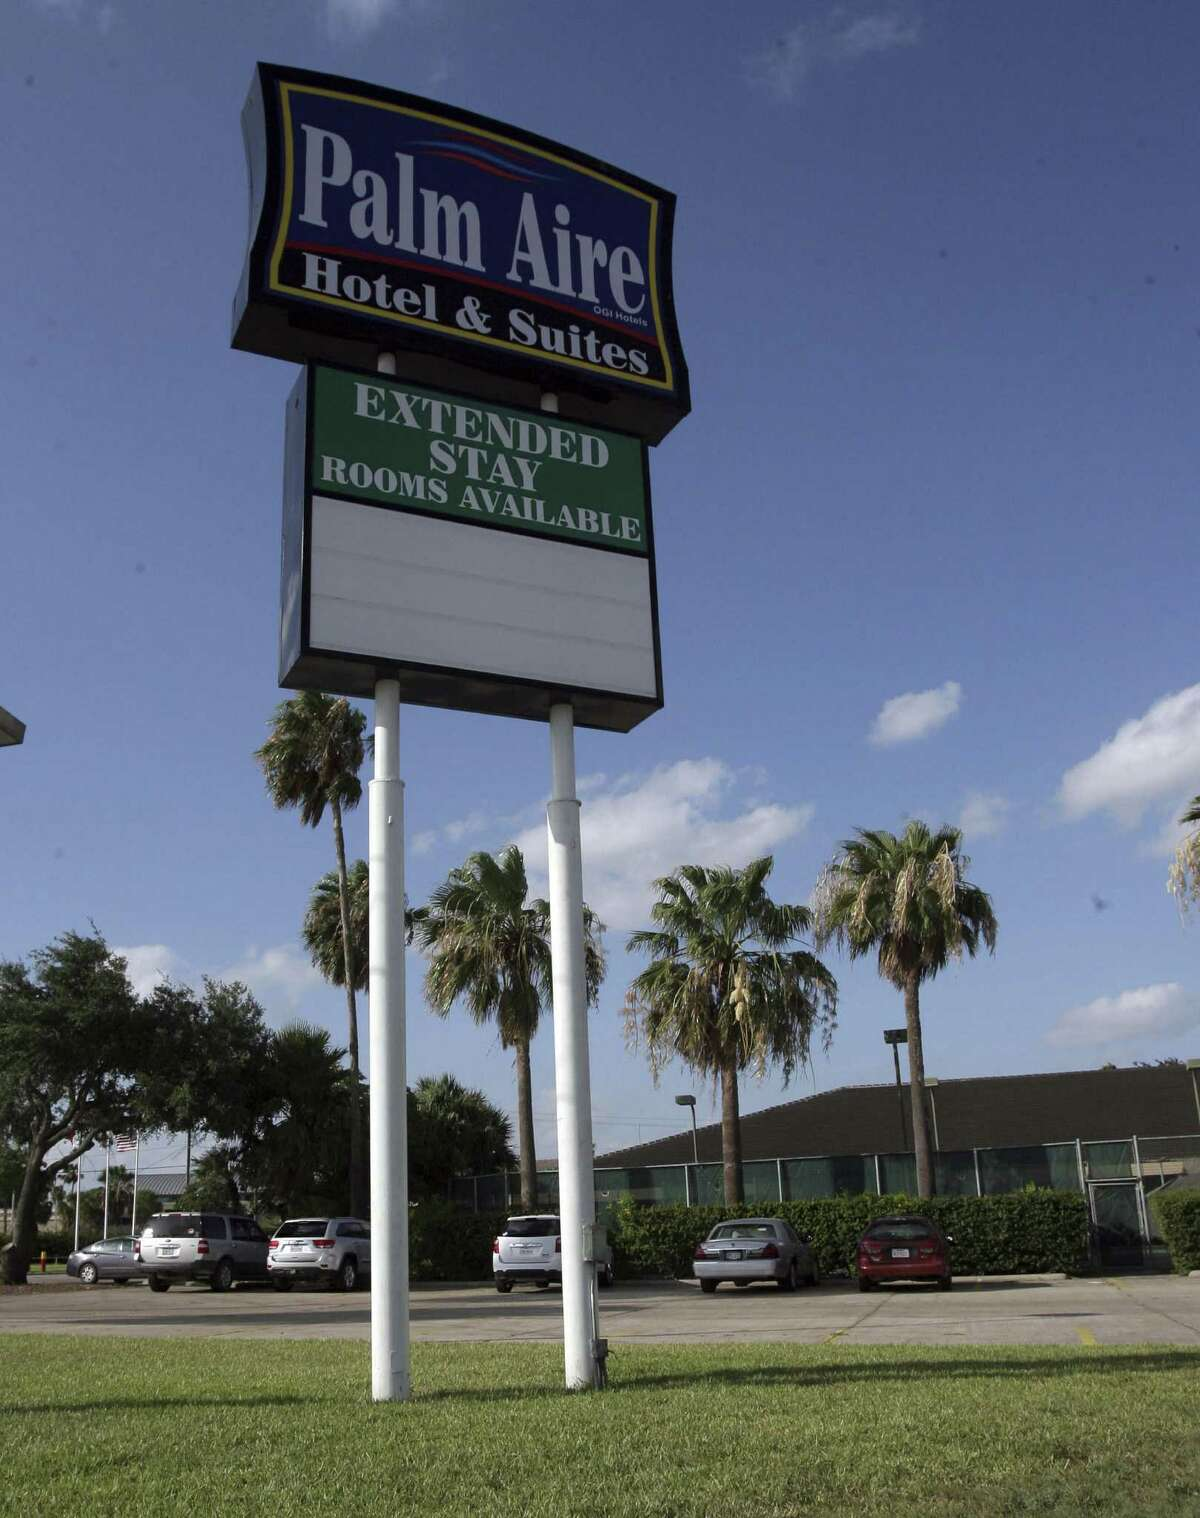 The hotel in Weslaco, which is open and taking reservations, is listed for sale for $4 million on a website.